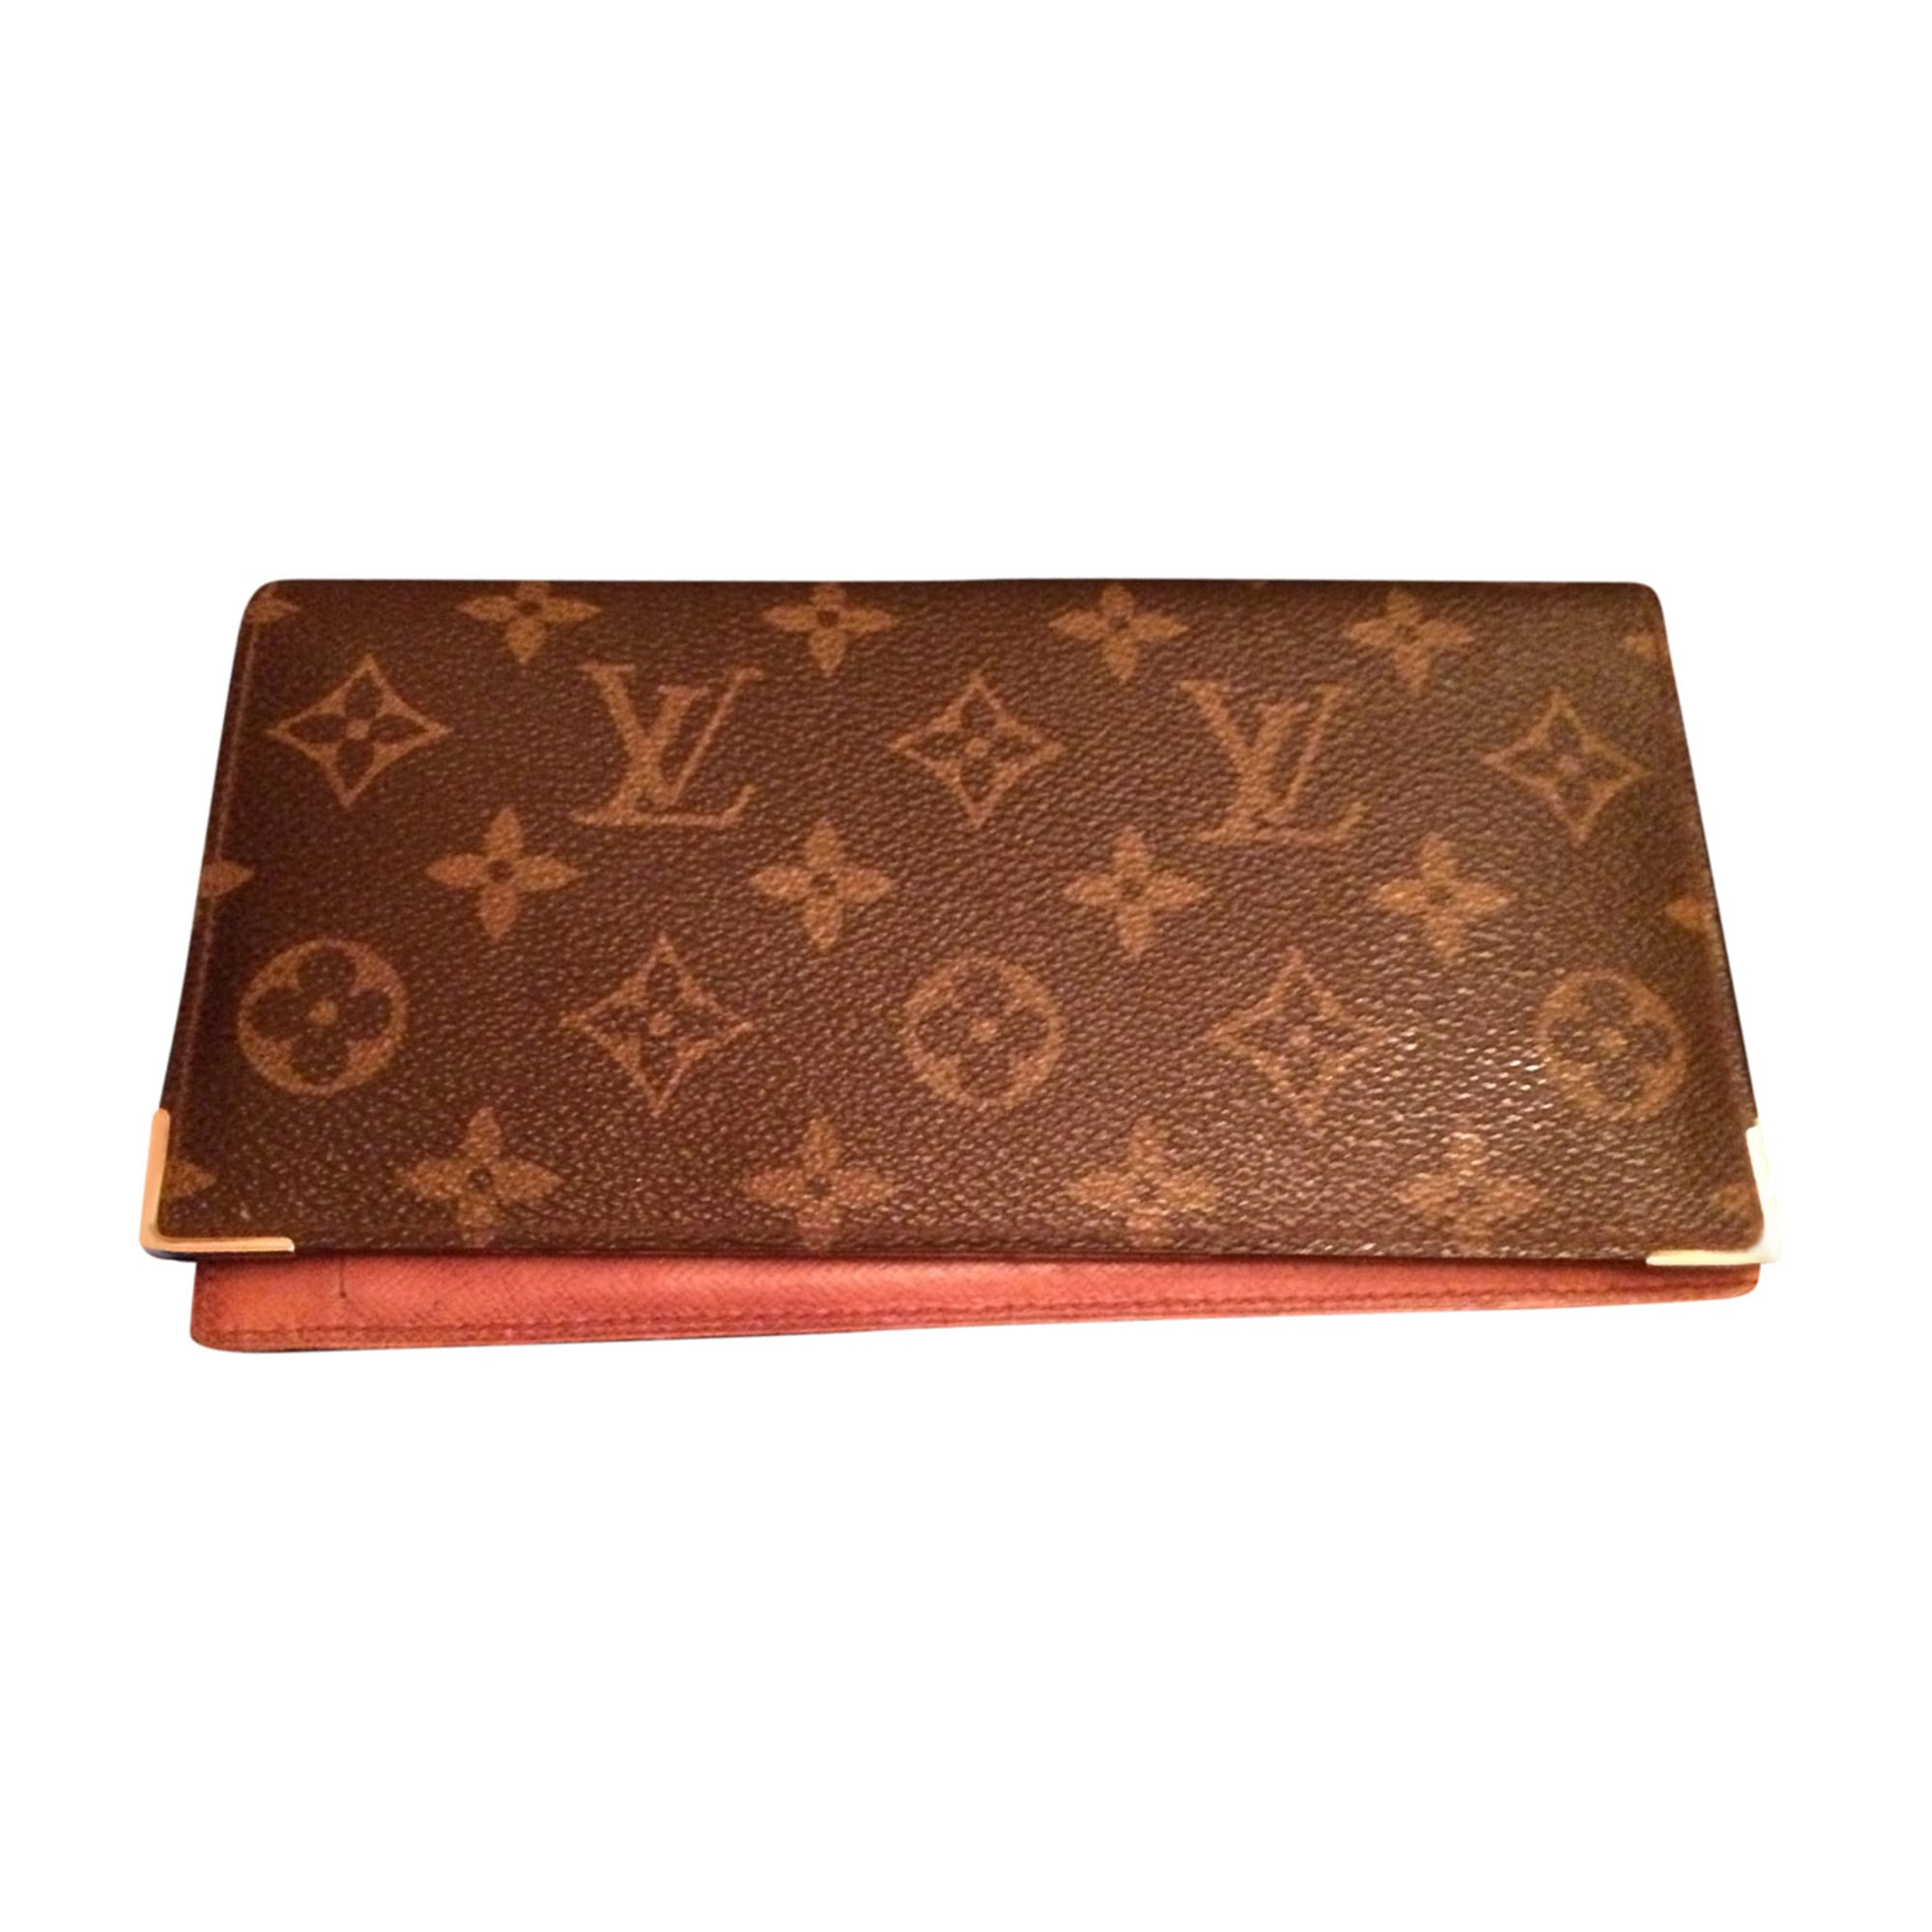 23aa3a54c6c5 Checkbook Cover LOUIS VUITTON brown vendu par Francine 405 - 7163046